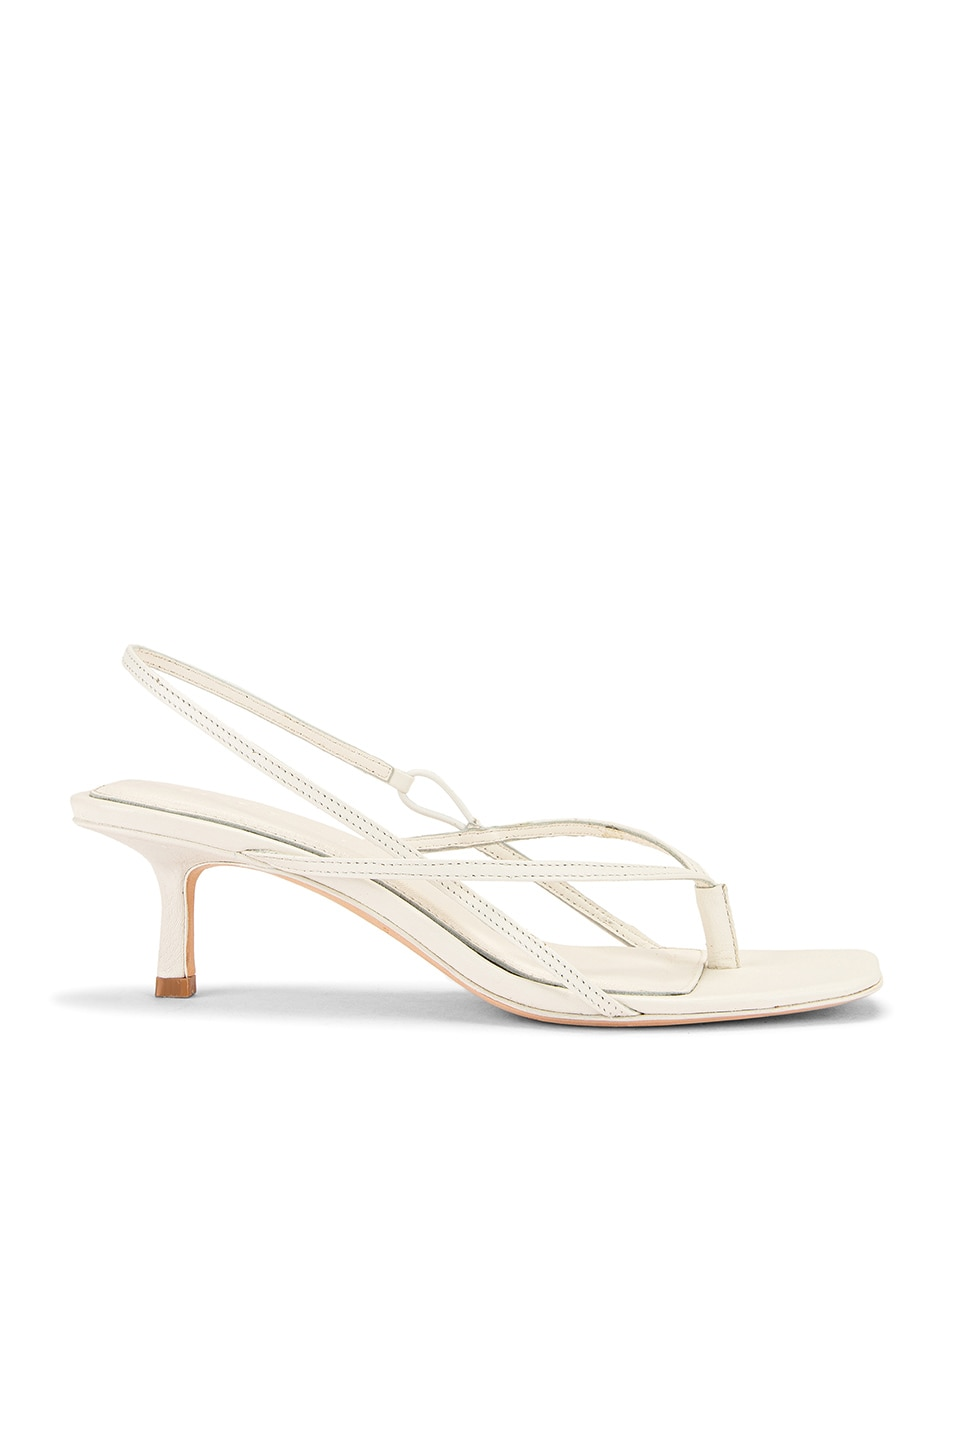 Image 1 of Studio Amelia 2.6 Flip Flop Heel in White Nappa Leather